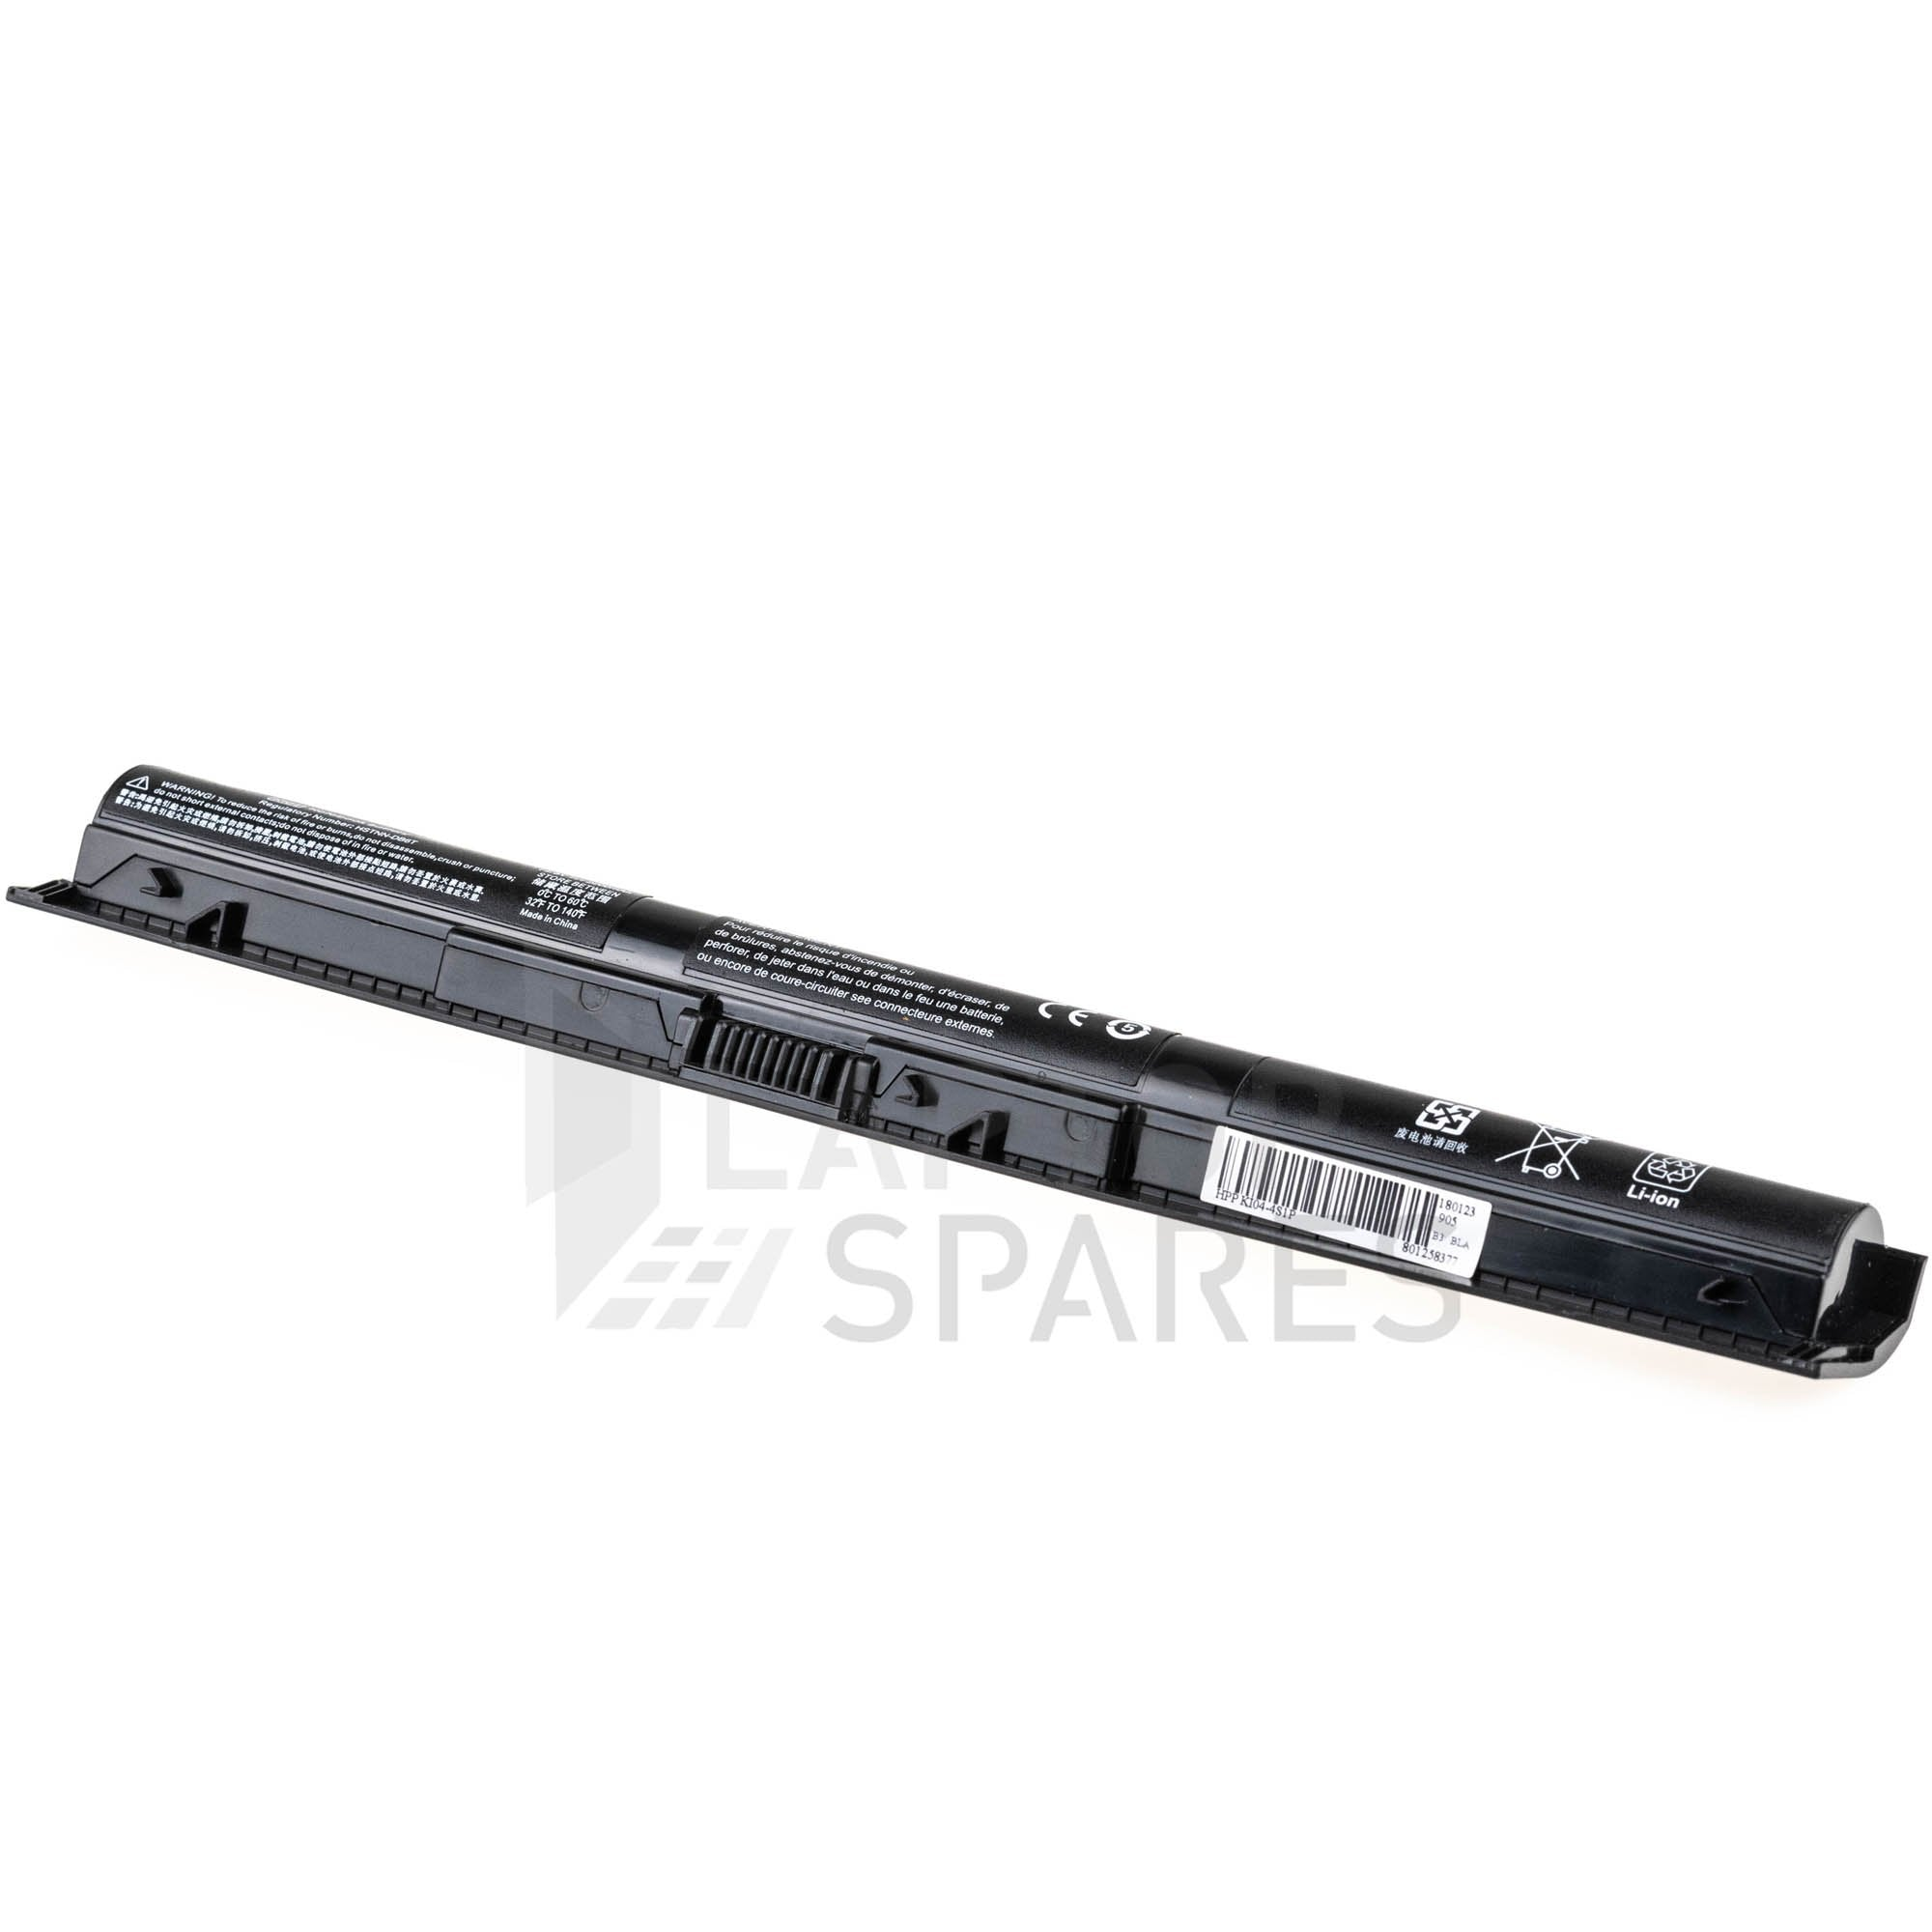 HP HSTNN-LB6S HSTNN-DB6T HSTNN-LB6R 2200mAh 4 Cell Battery